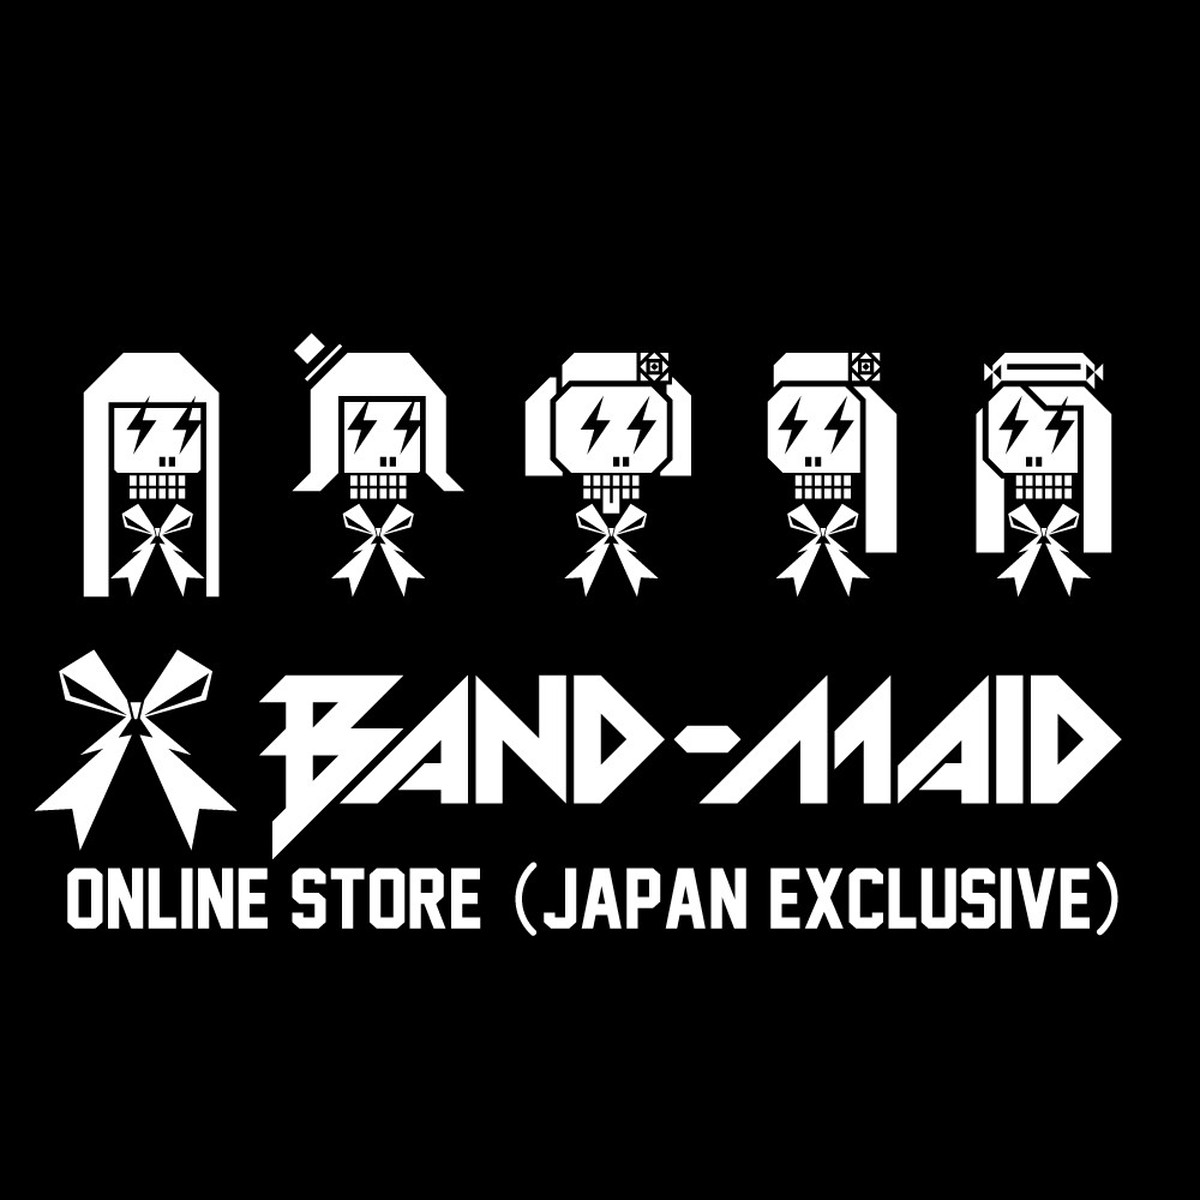 Band maid online store japan exclusive